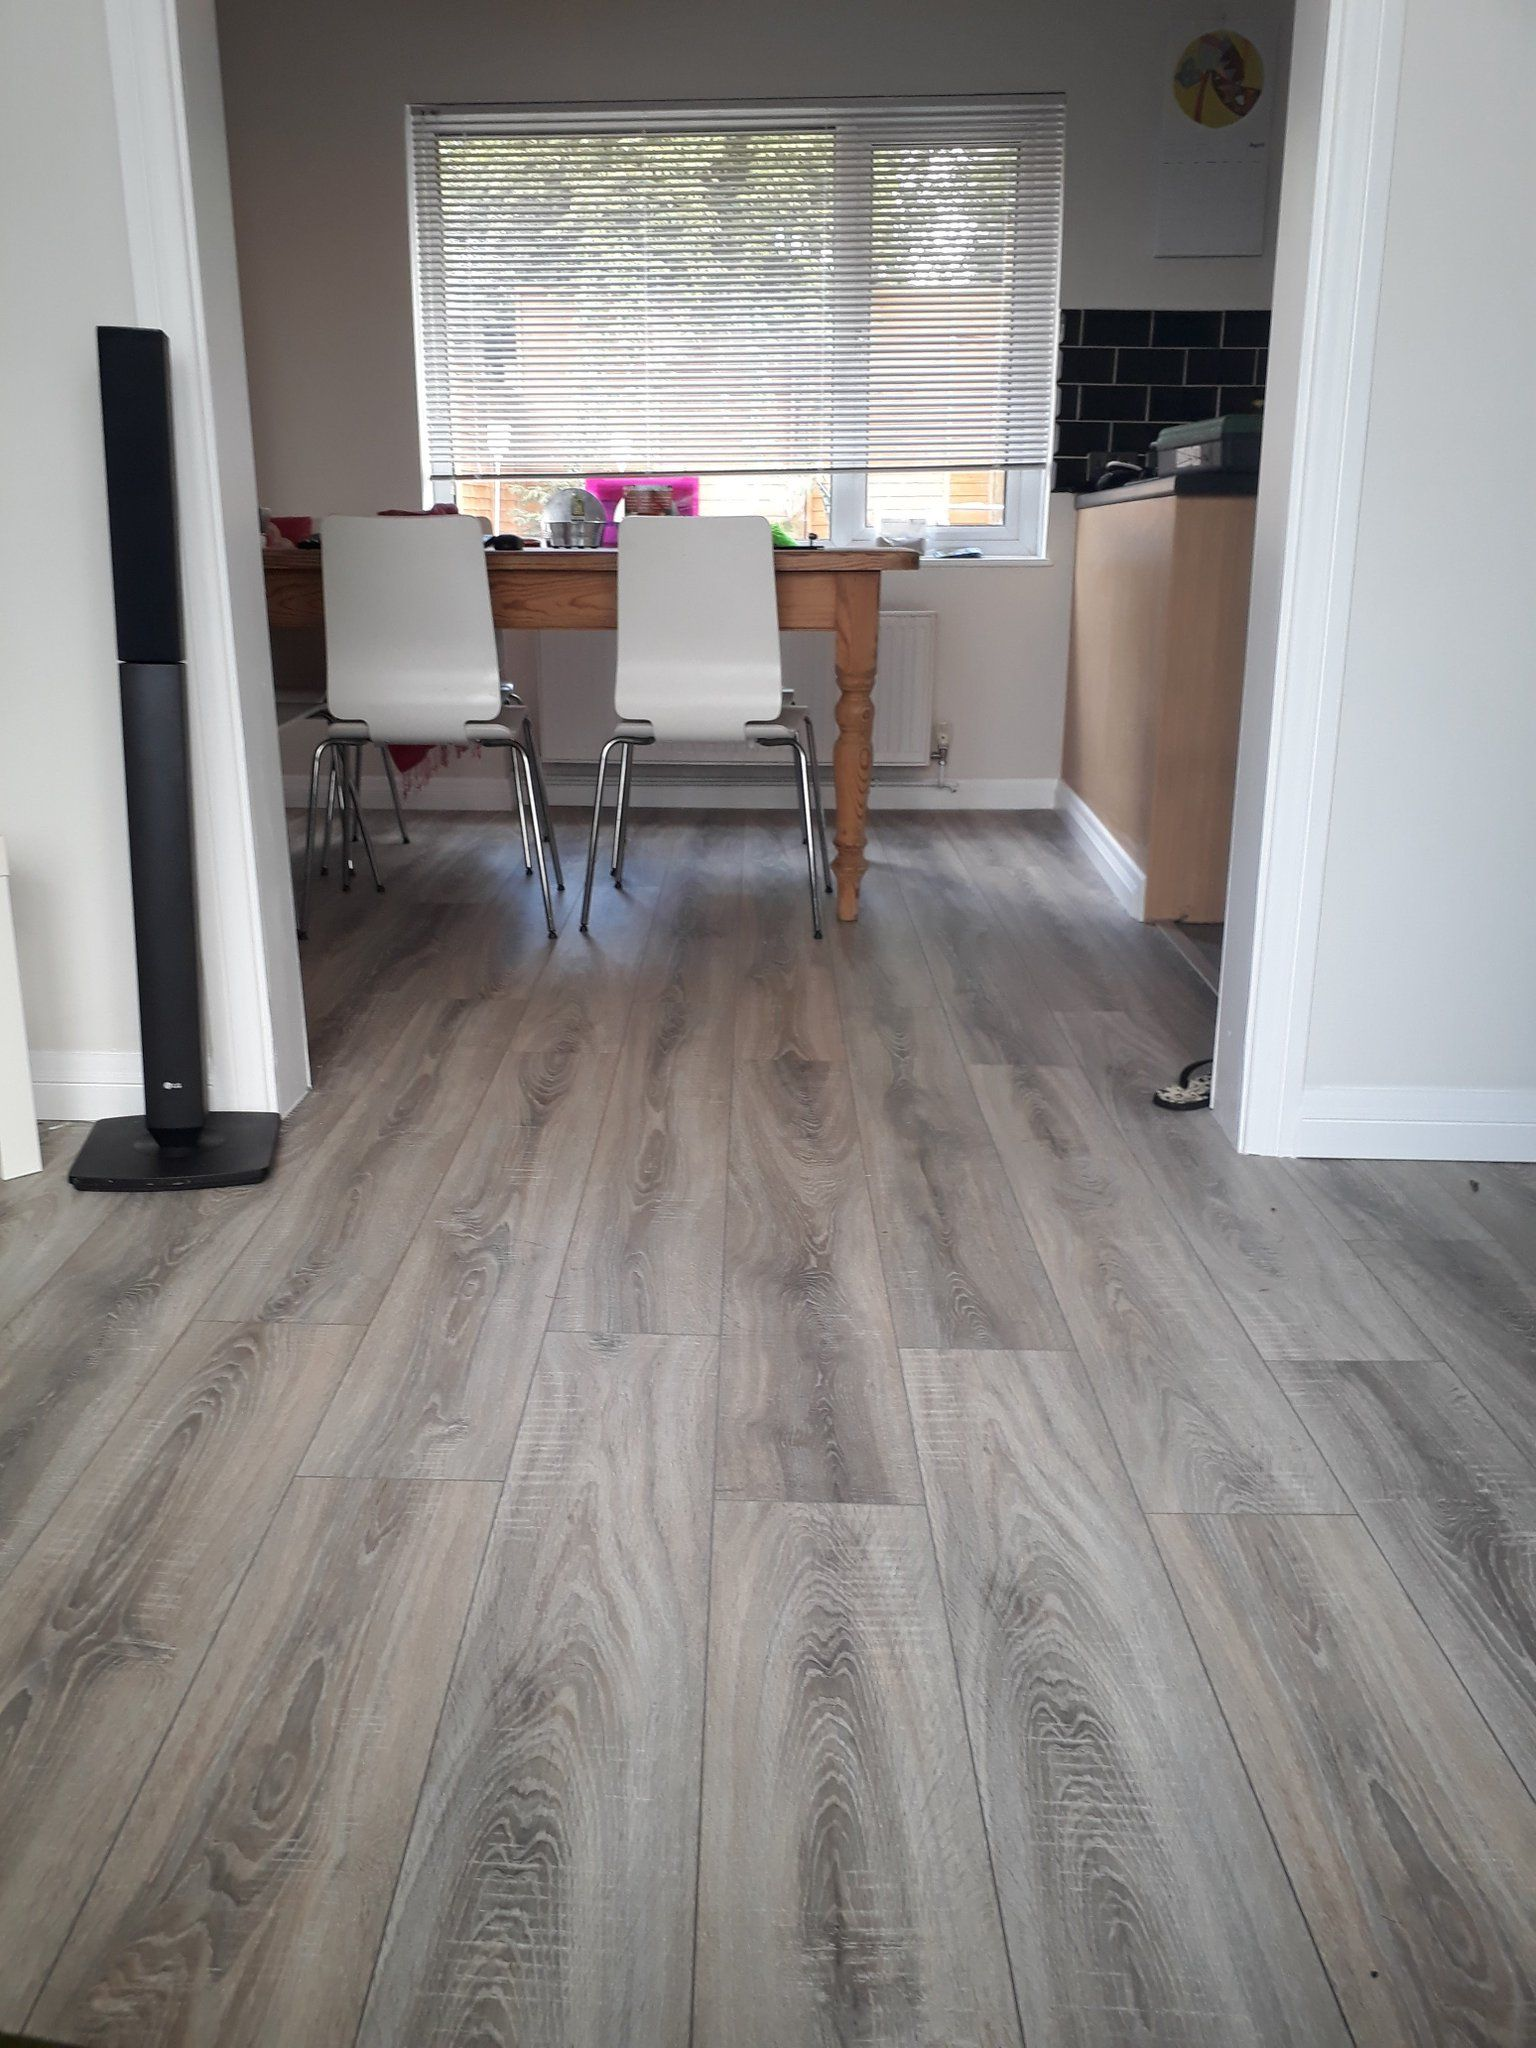 Laminate After Being Installed For More Information Visit Httpswwweggercomshopen Gbdecors Flooring 1019178 Elfc 060 730 H1056 43P1019178